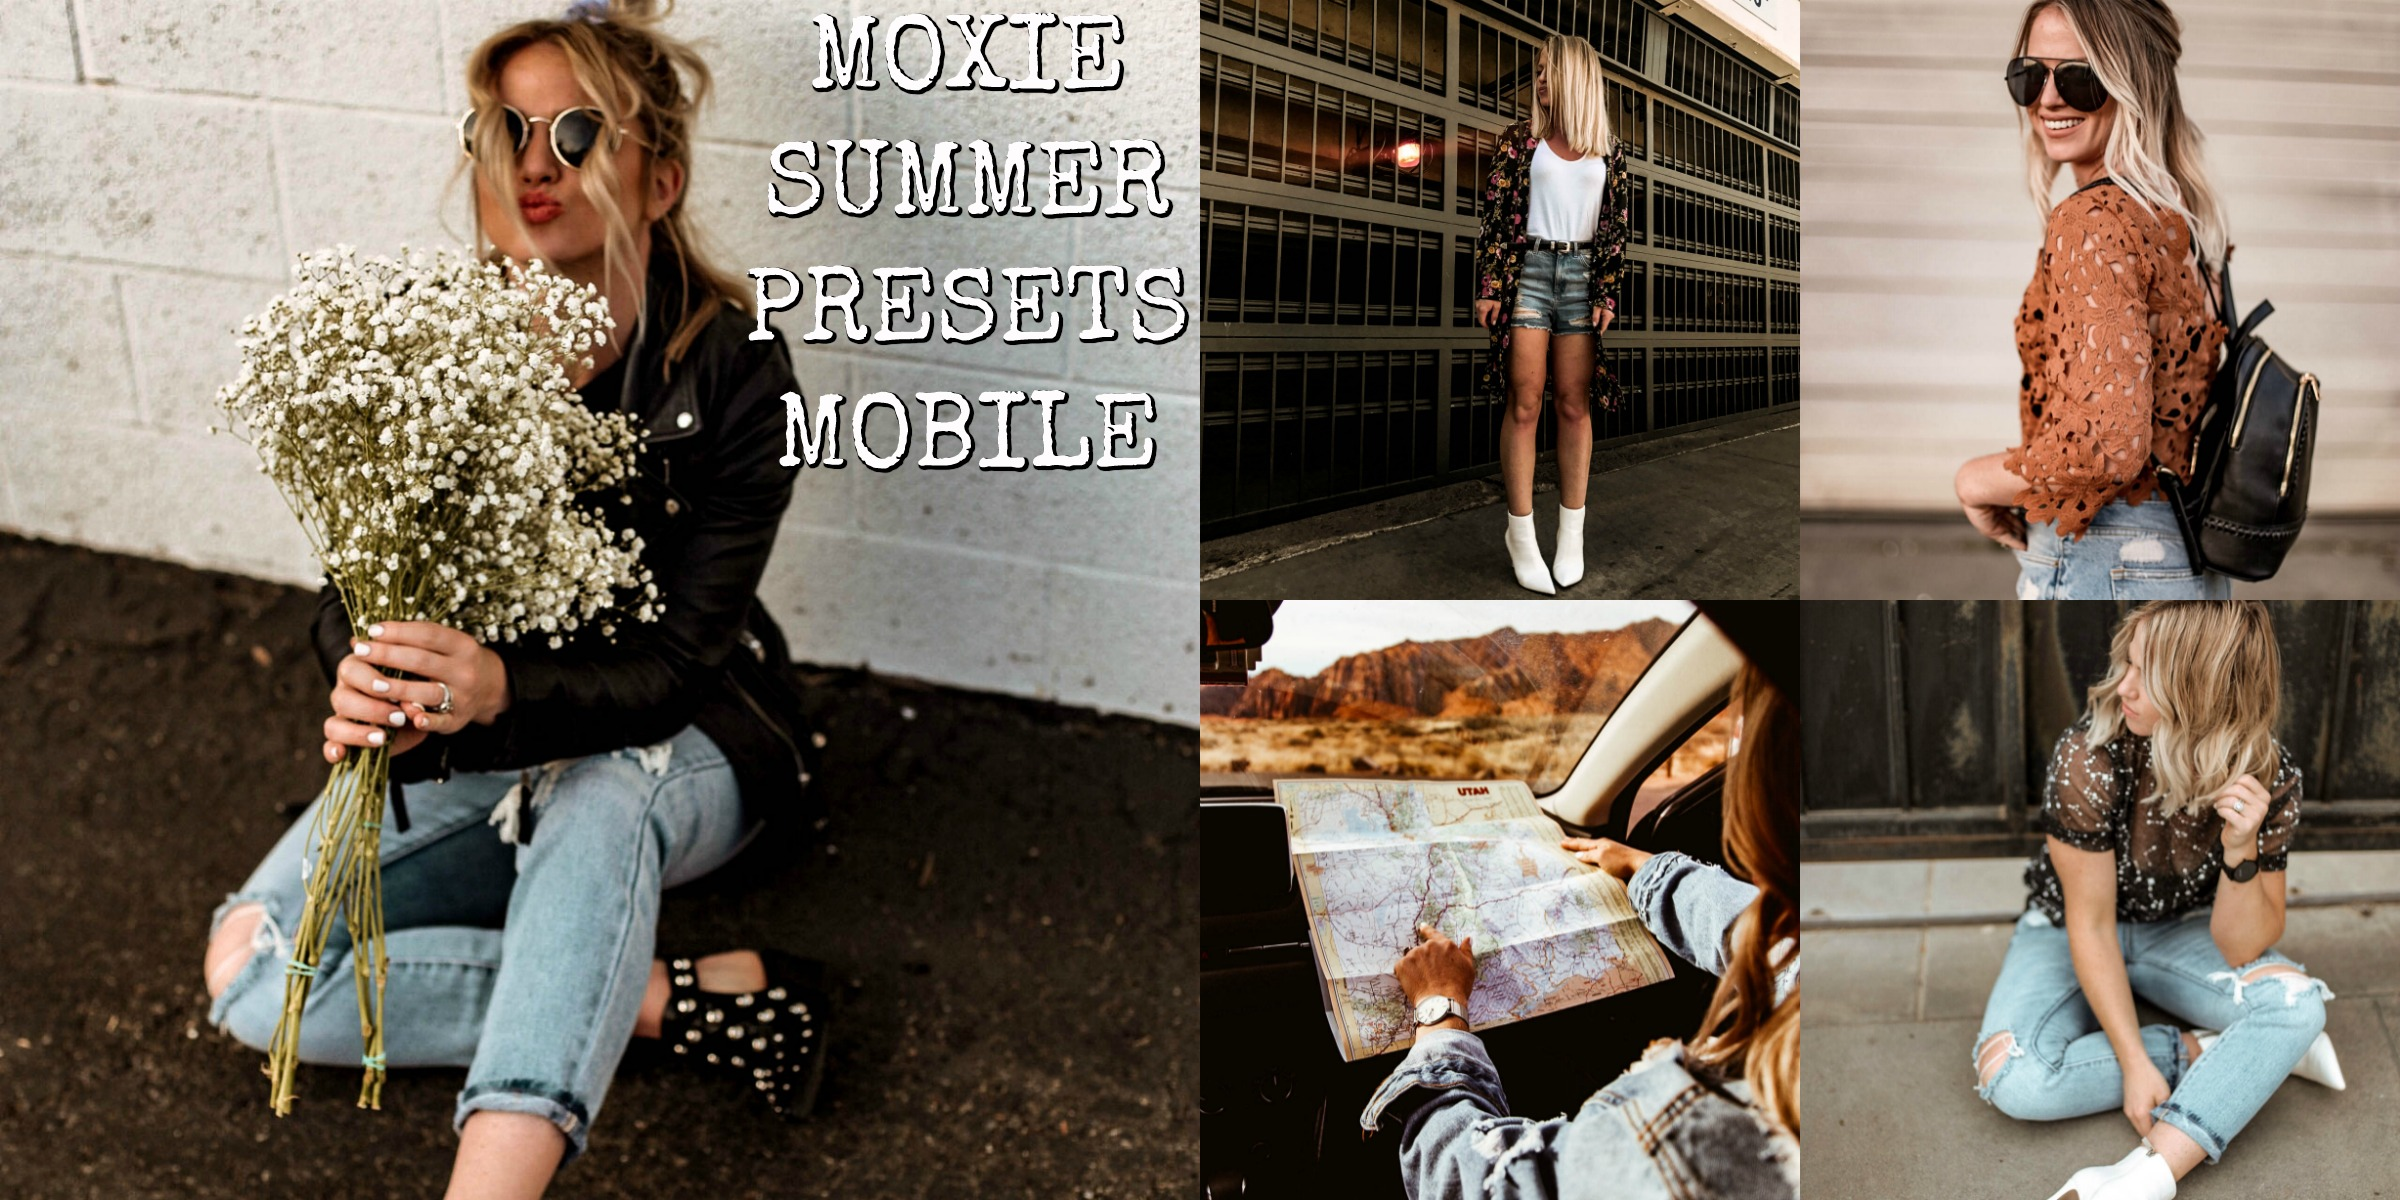 MOXIE SUMMER PRESETS MOBILE